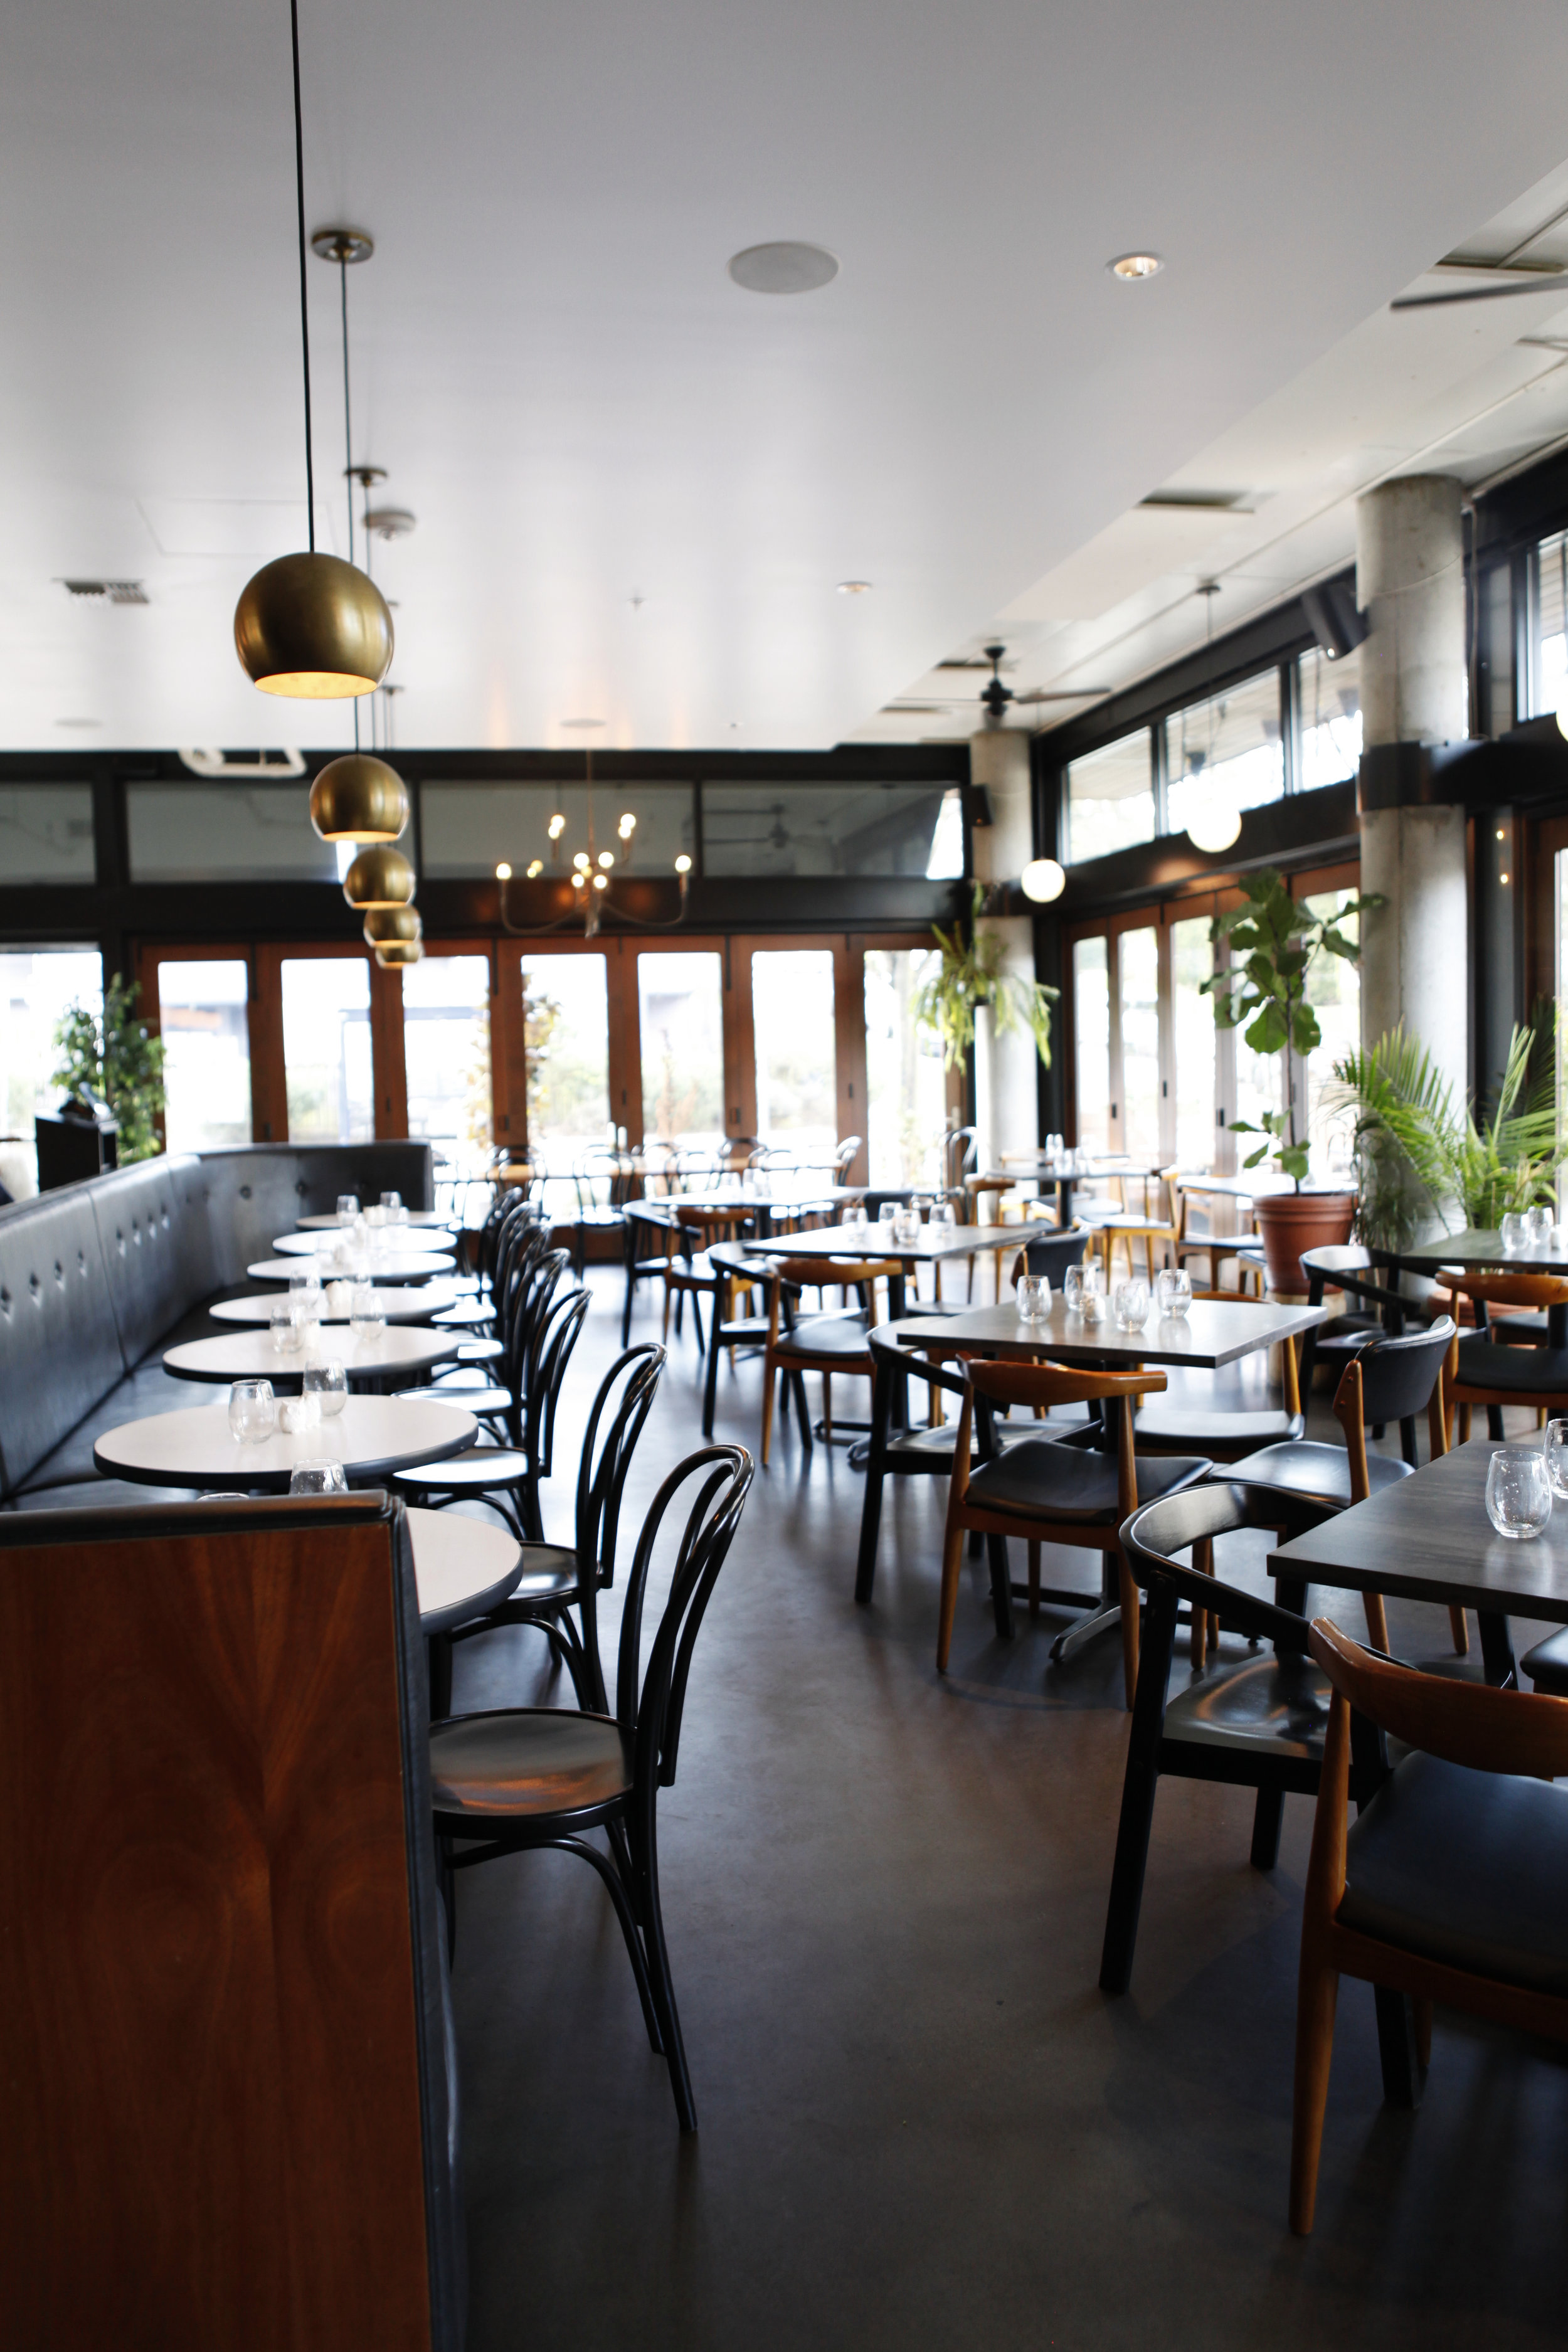 The empty, light-filled dining room at Tallulah's, with wooden chairs and tables.